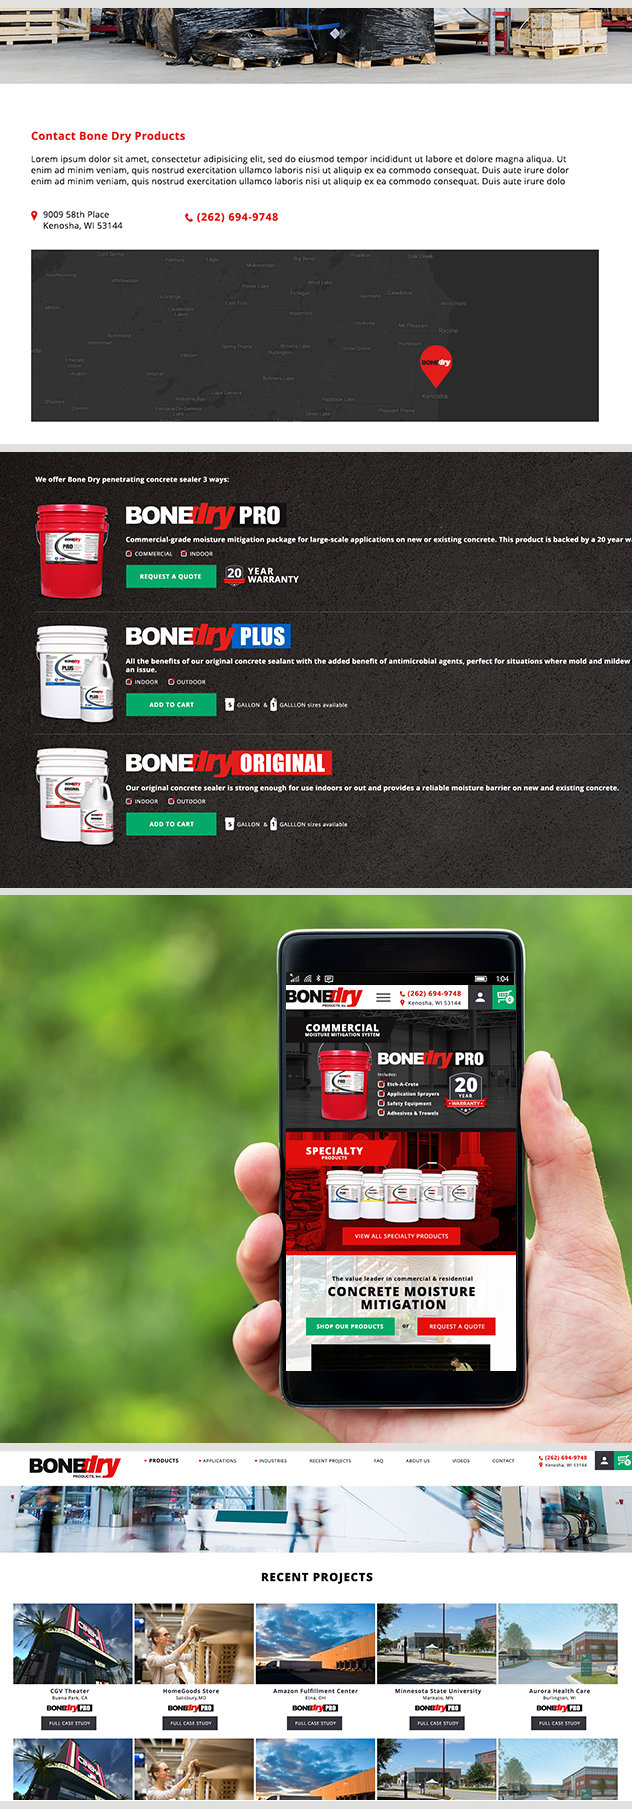 Milwaukee web marketing for Bone Dry Products